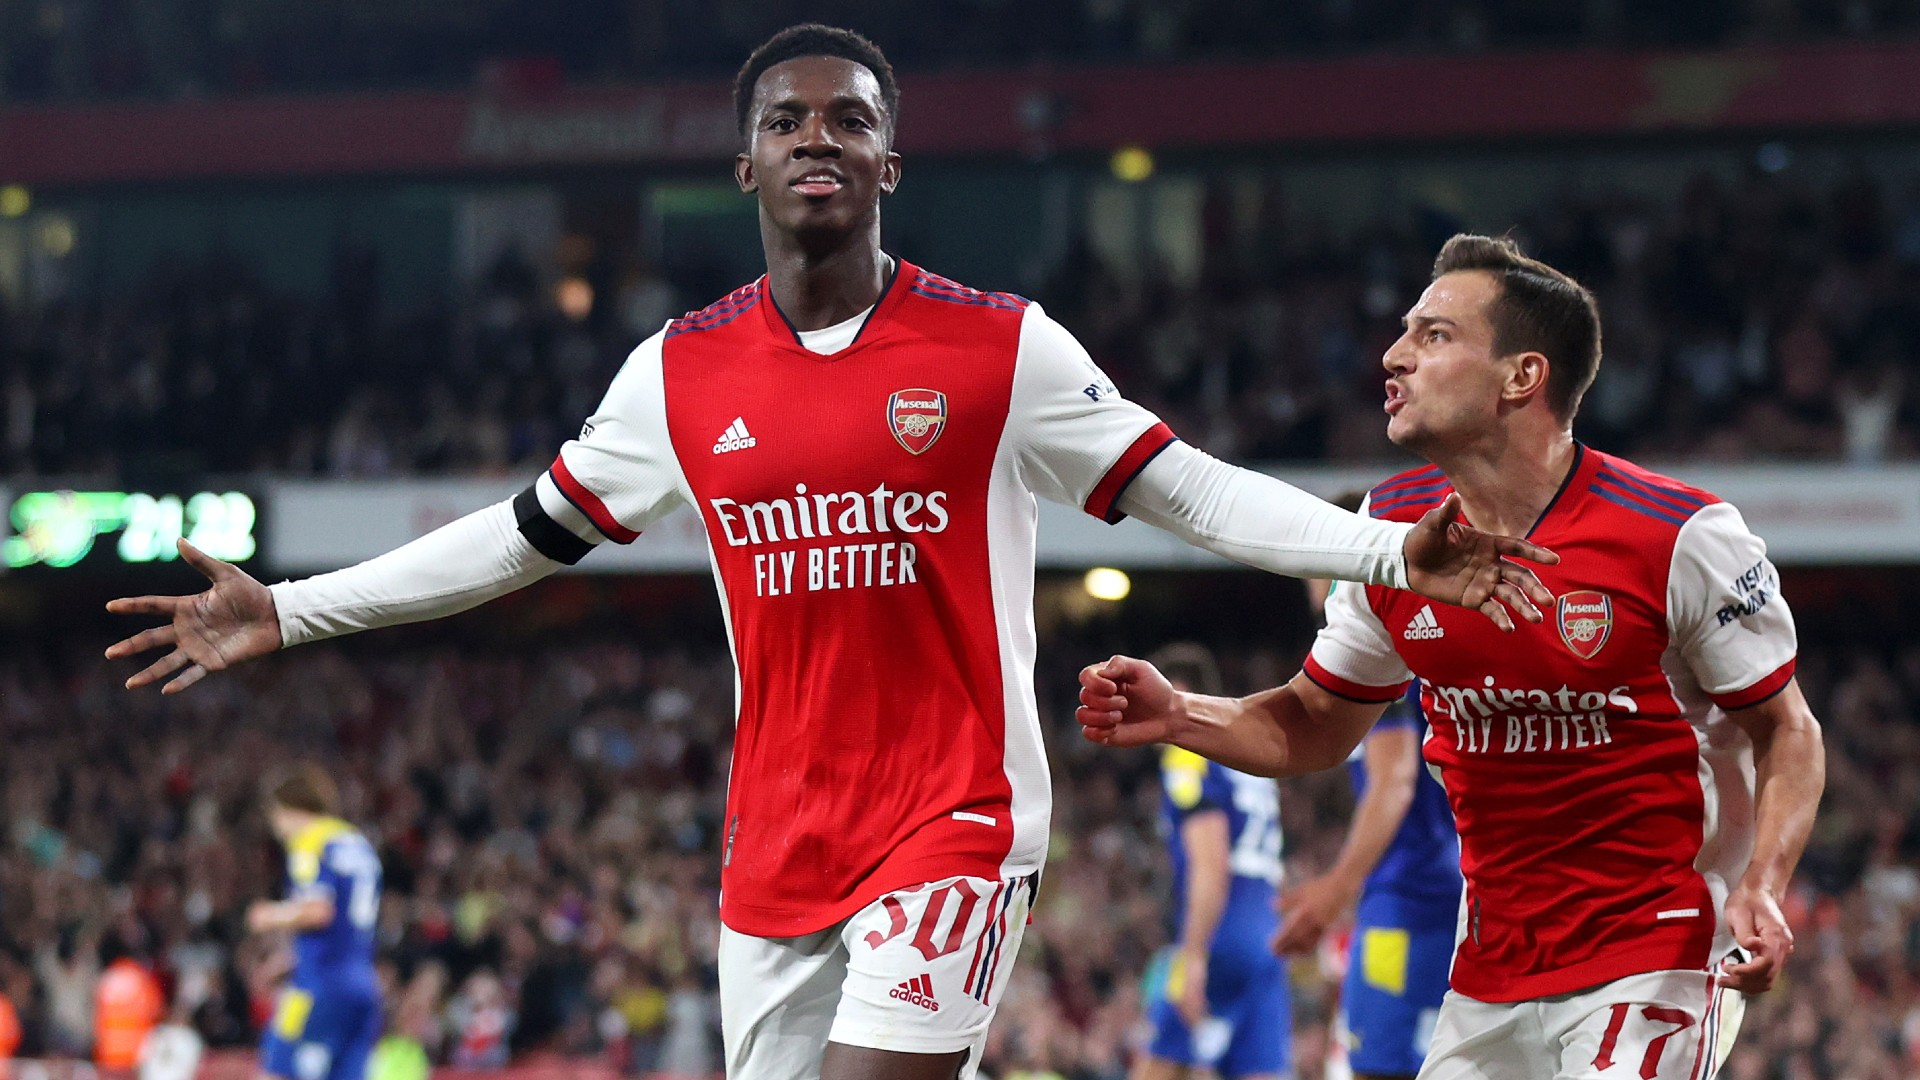 'I have no doubts about what he can offer' – Arsenal's Arteta gushes over Nketiah's display vs Leeds United